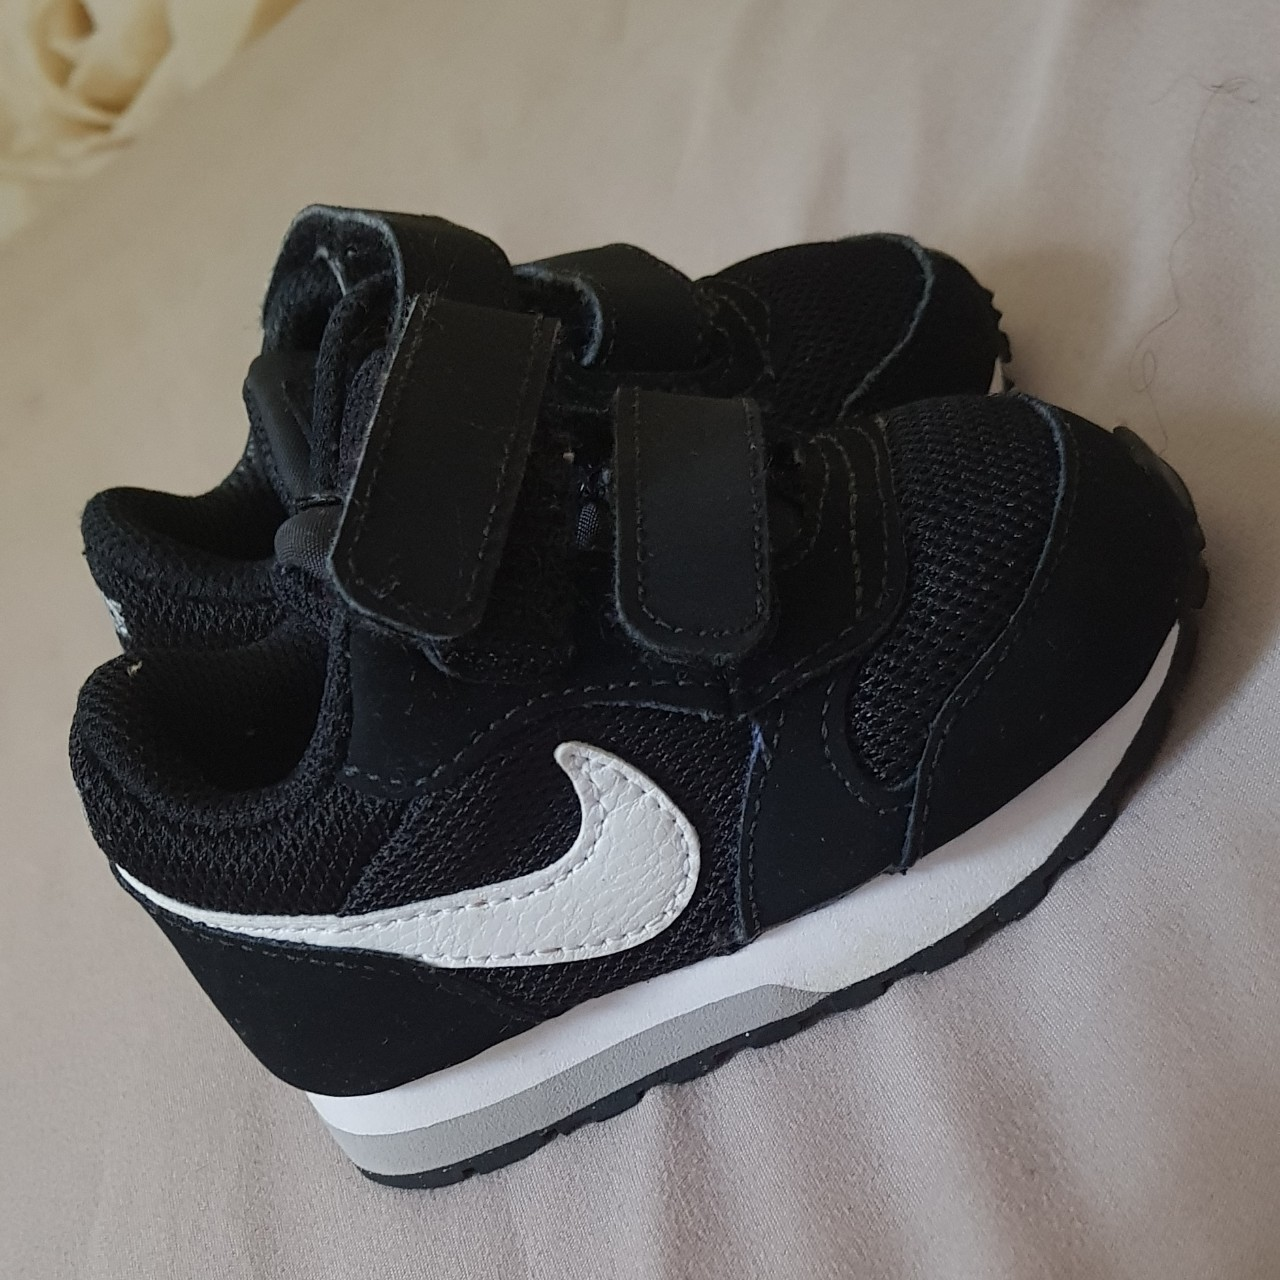 Baby/Infant Black Nike Trainers Size 2